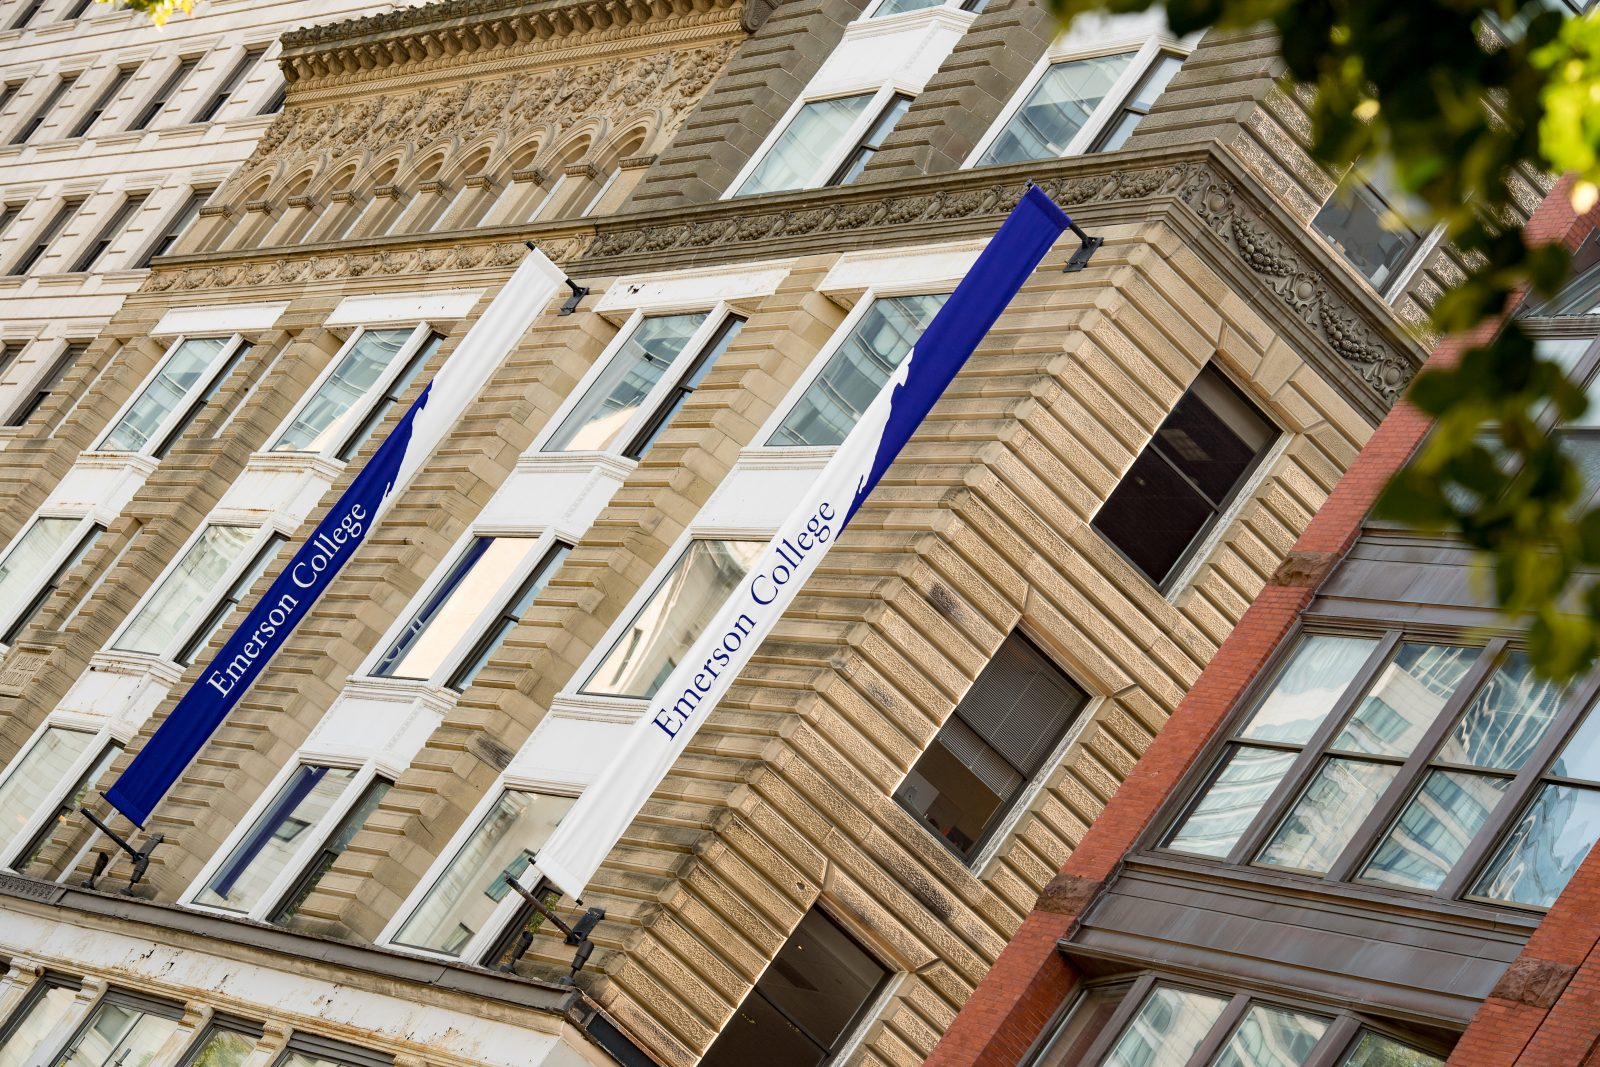 Emerson buildings with banners